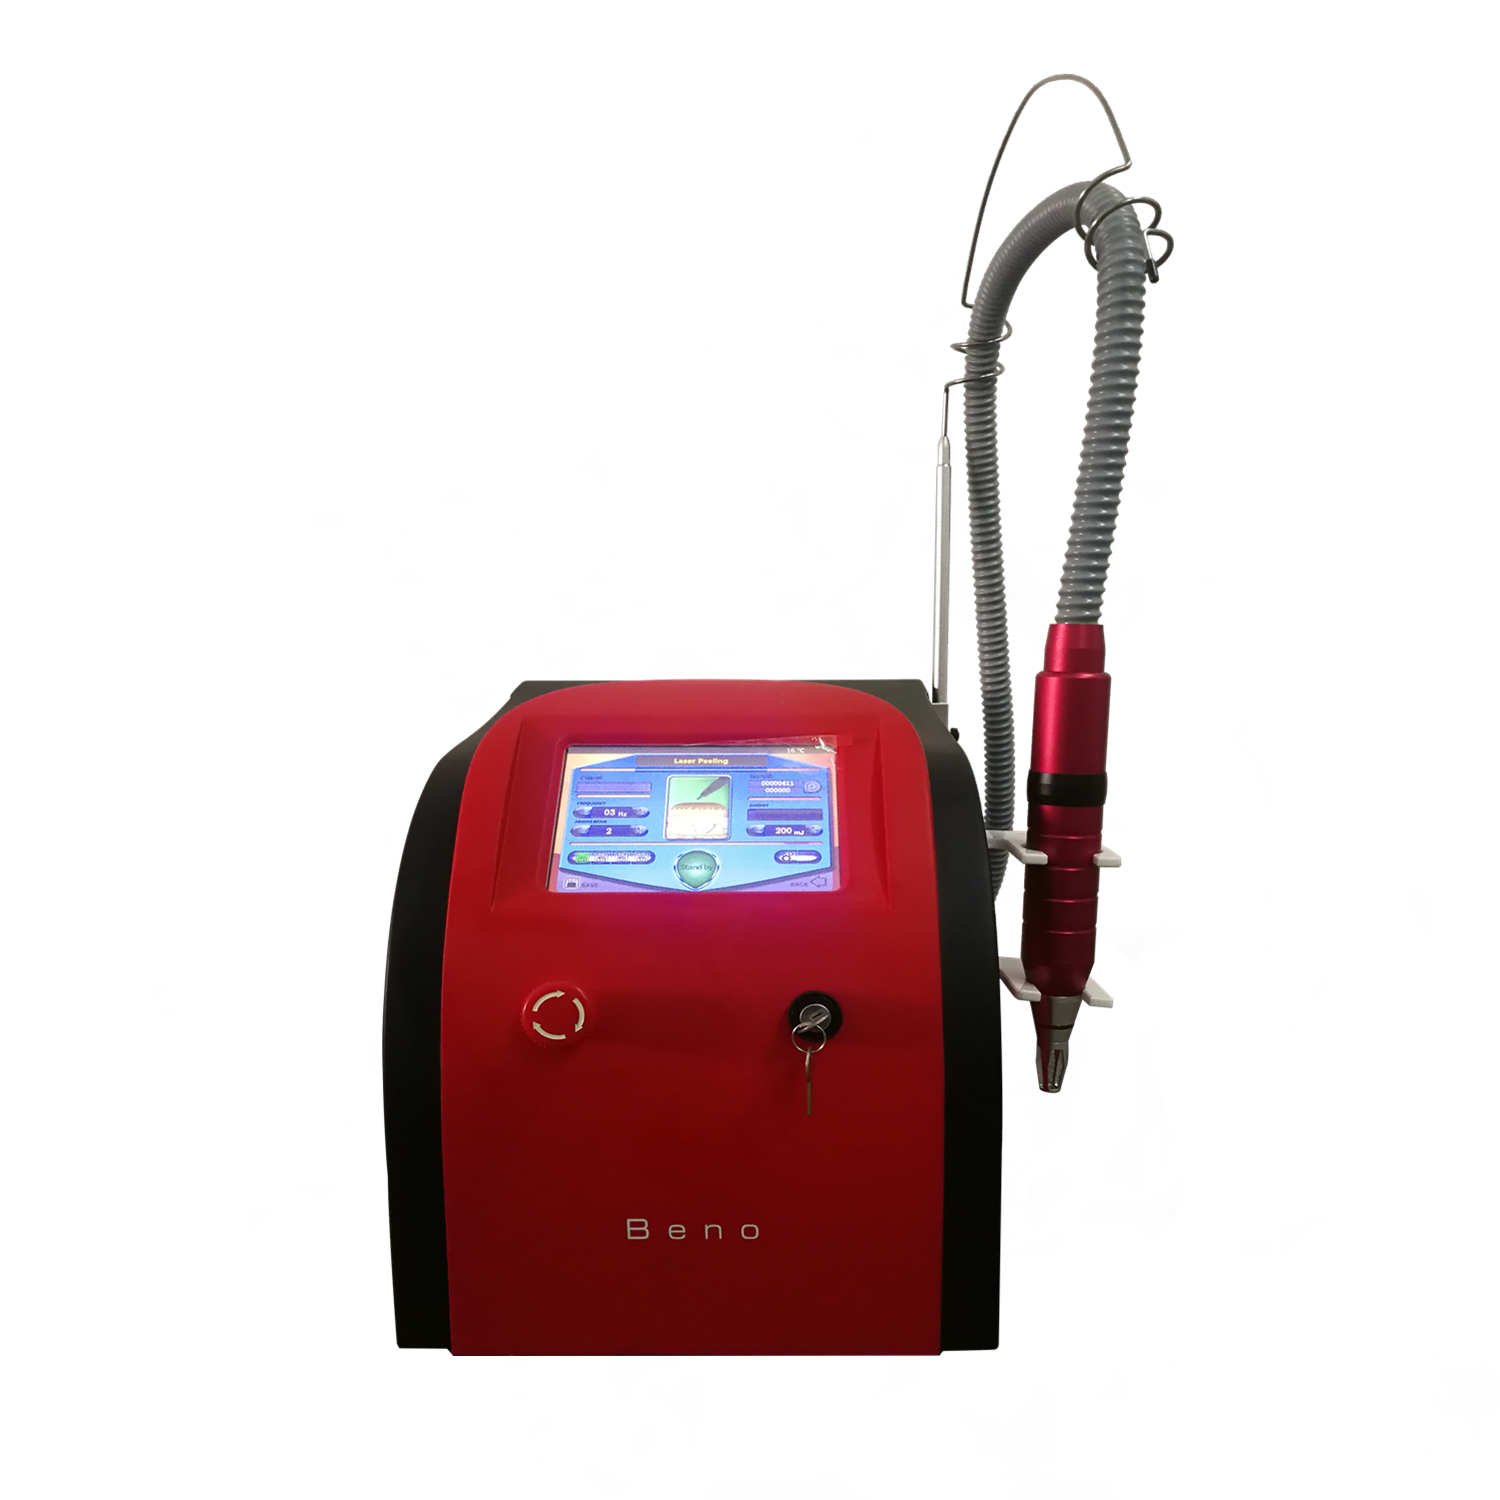 Hot Sale Portable Tattoo Removal Machine 1064nm 532nm Q Switch ND YAG Laser Equipment for Home and Salon Use